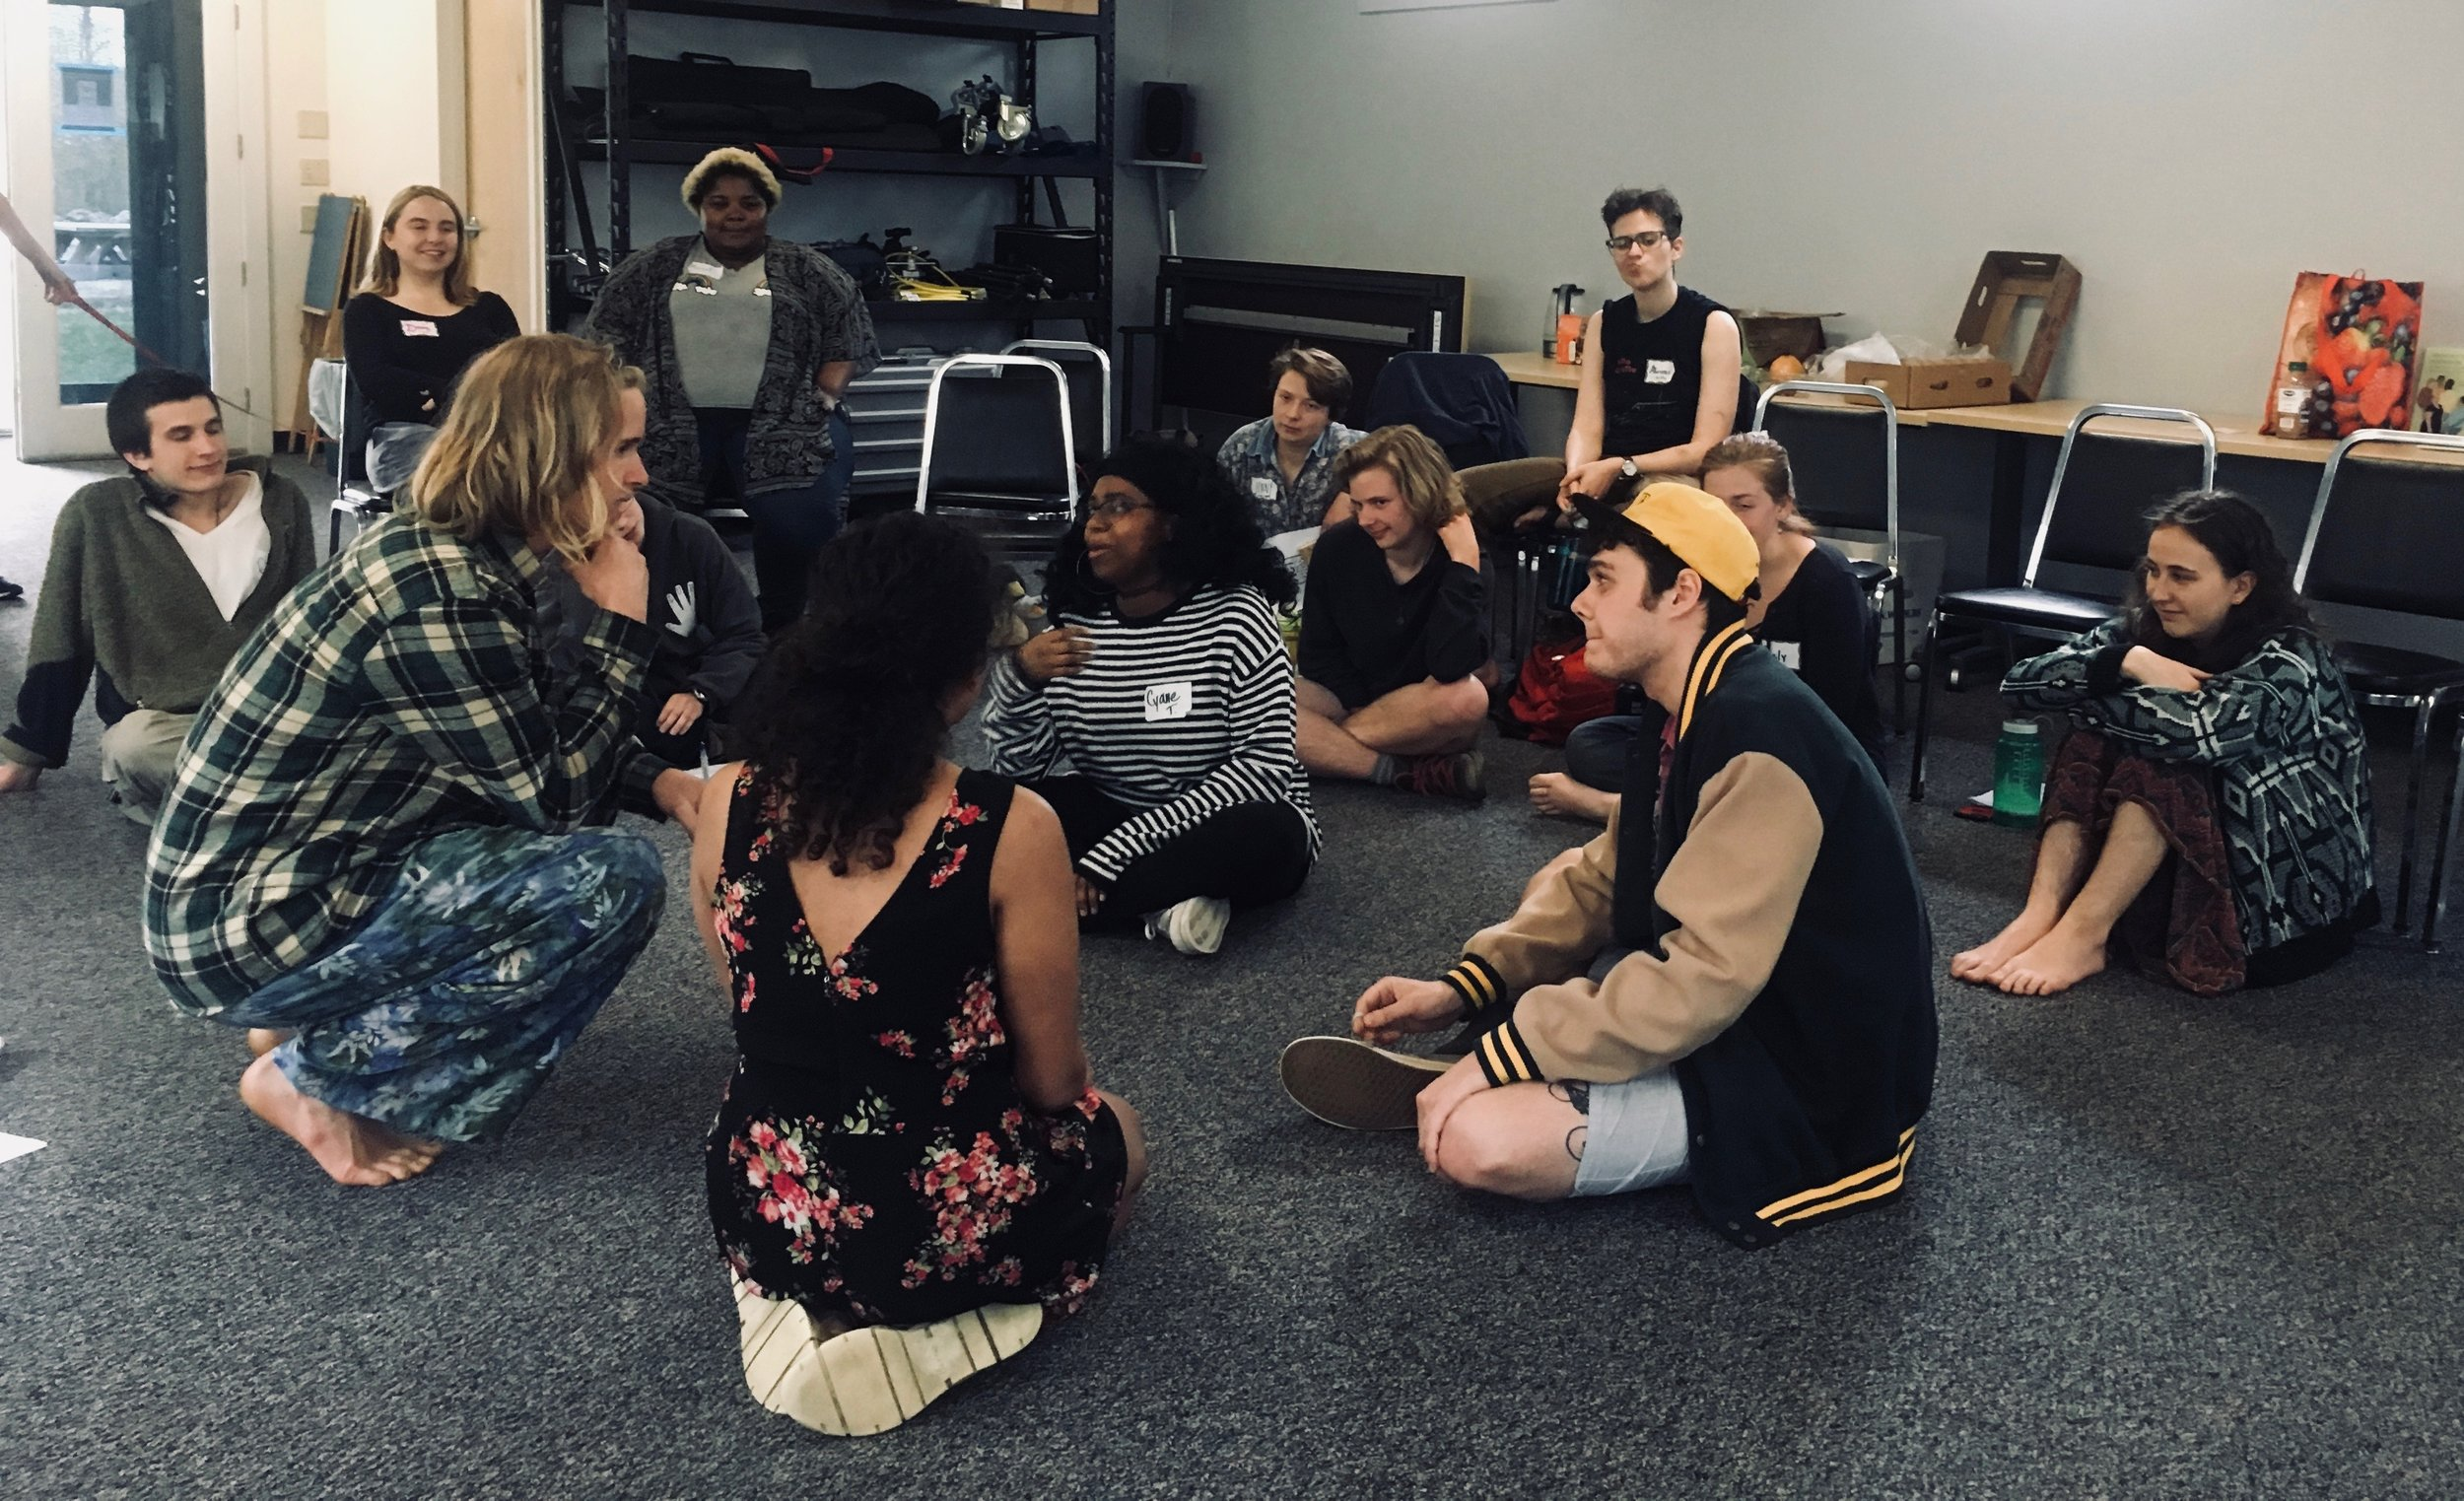 In the photo to the left student leaders share with Marlboro College staff and faculty what it is like to be a student of color on campus and their demands for racial equity. In the photo above student leaders at Marlboro College role-play unjust situations and how to respond. Spring 2018.